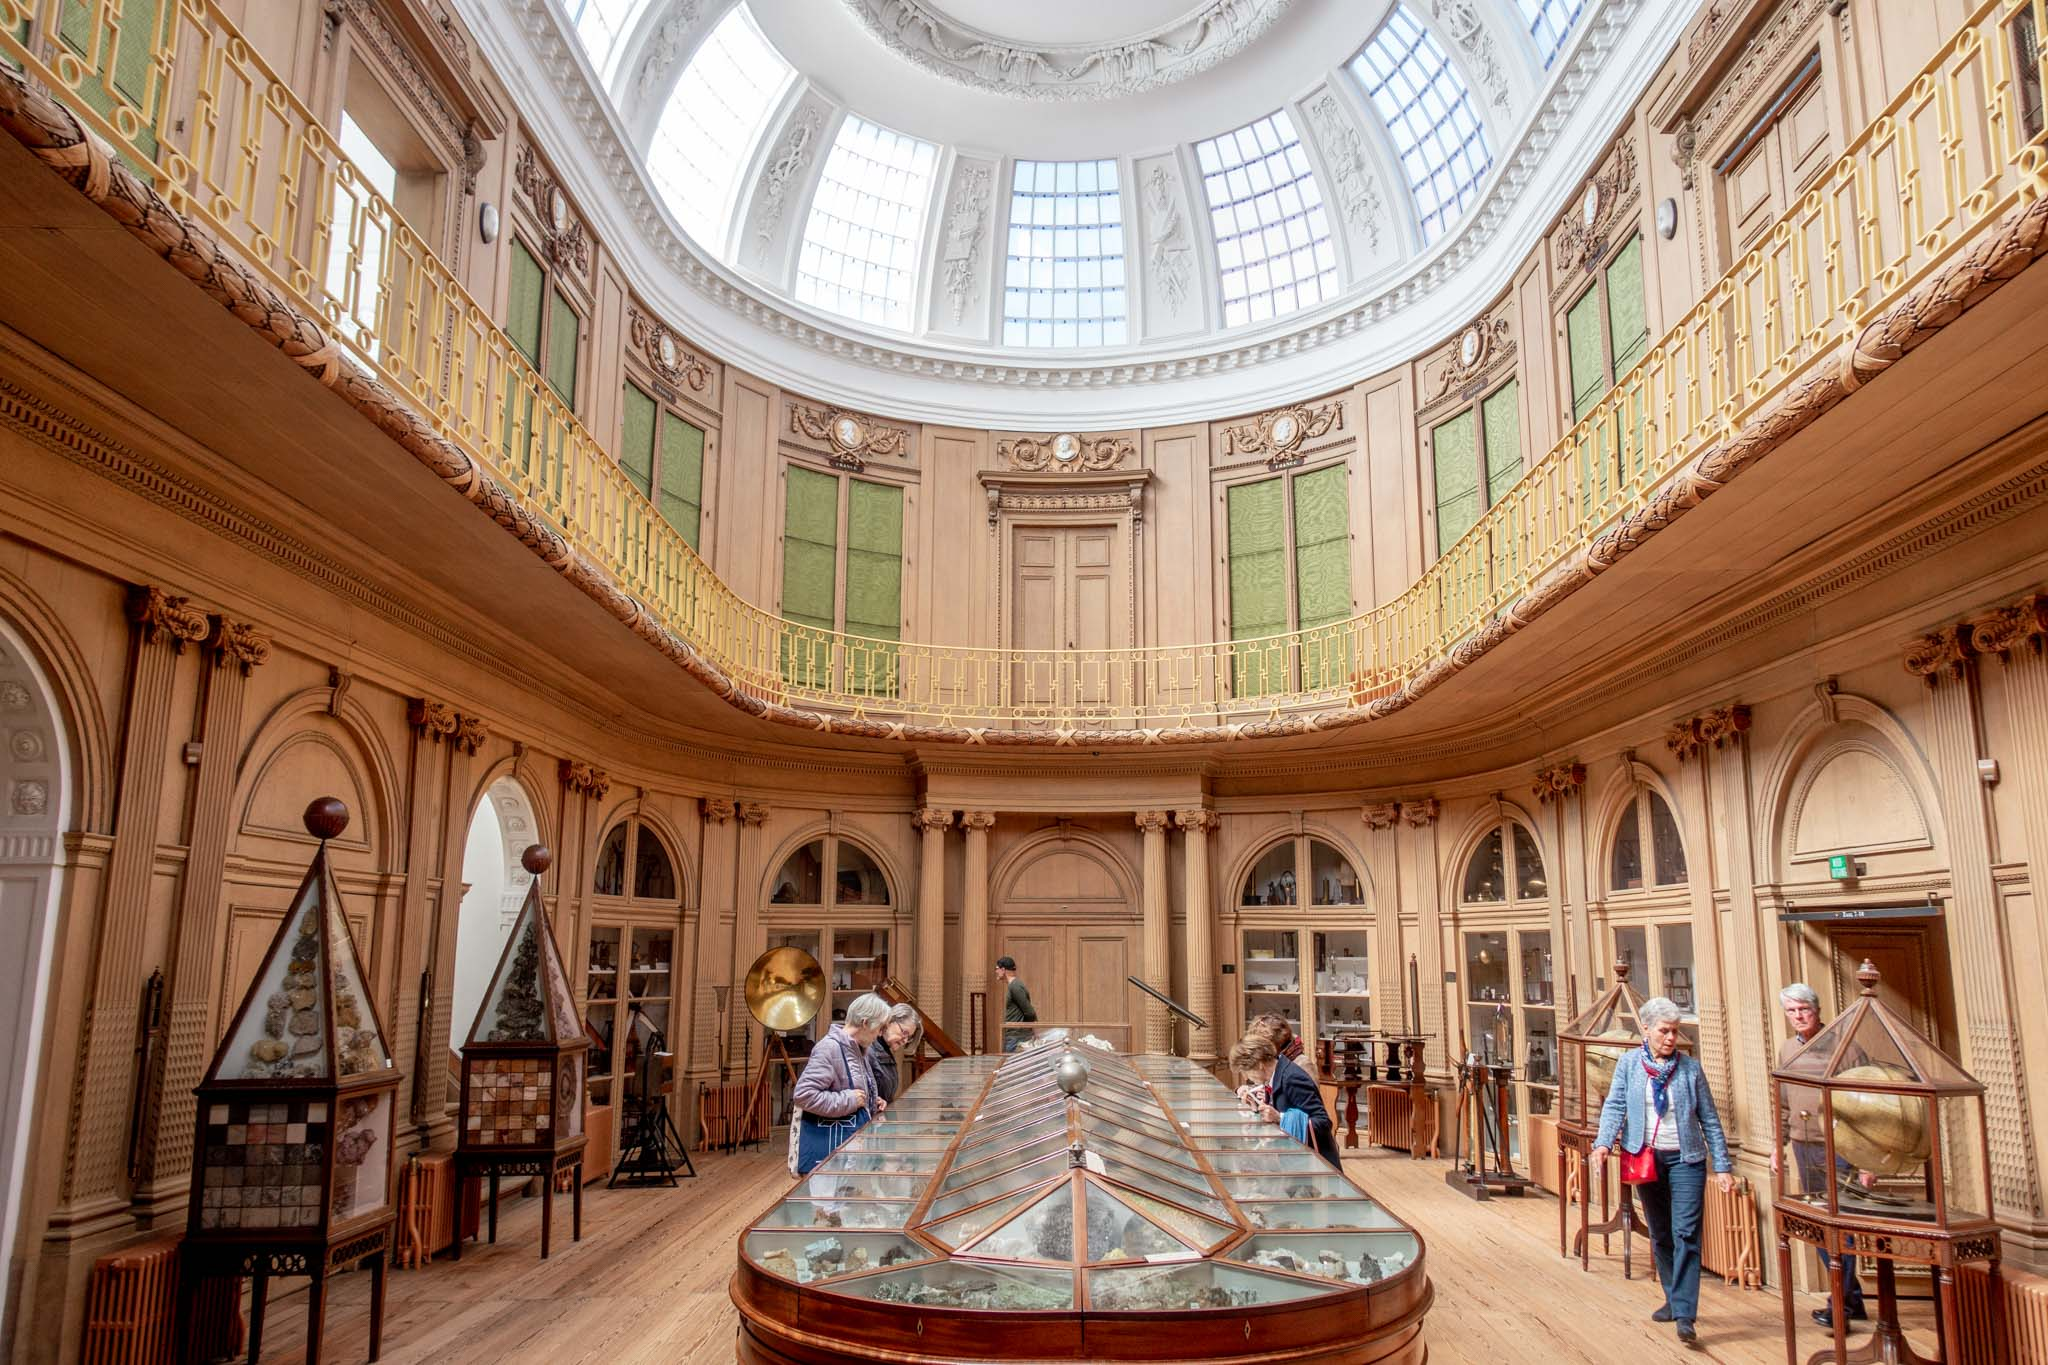 People in an oval room with a long museum display case